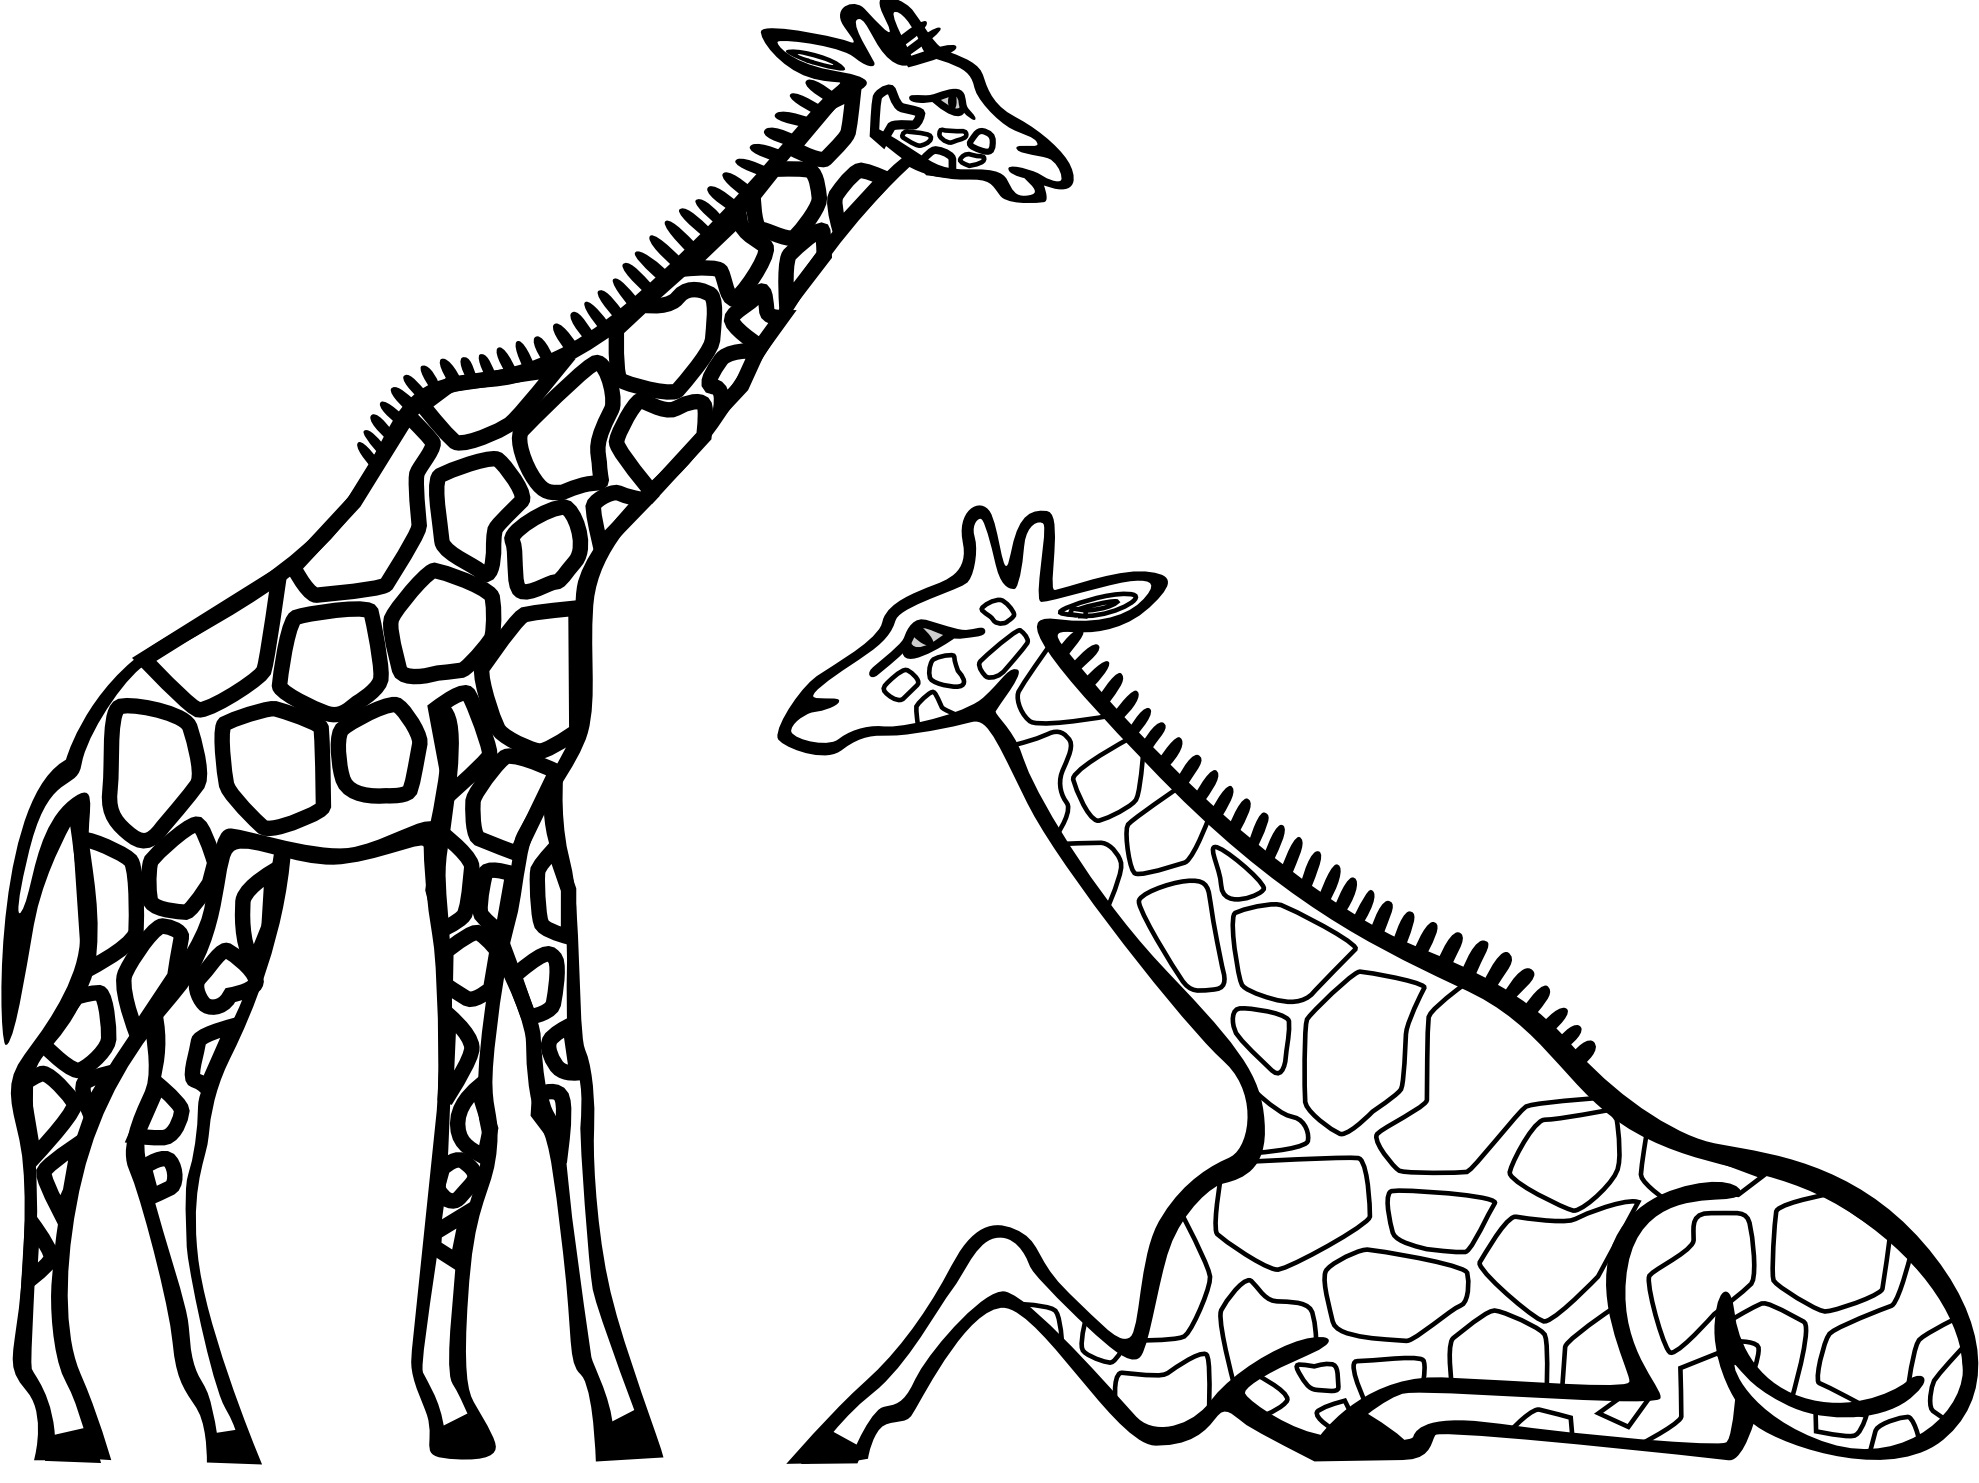 Dibujos De Jirafas Para Colorear E Imprimir: Free Printable Giraffe Coloring Pages For Kids